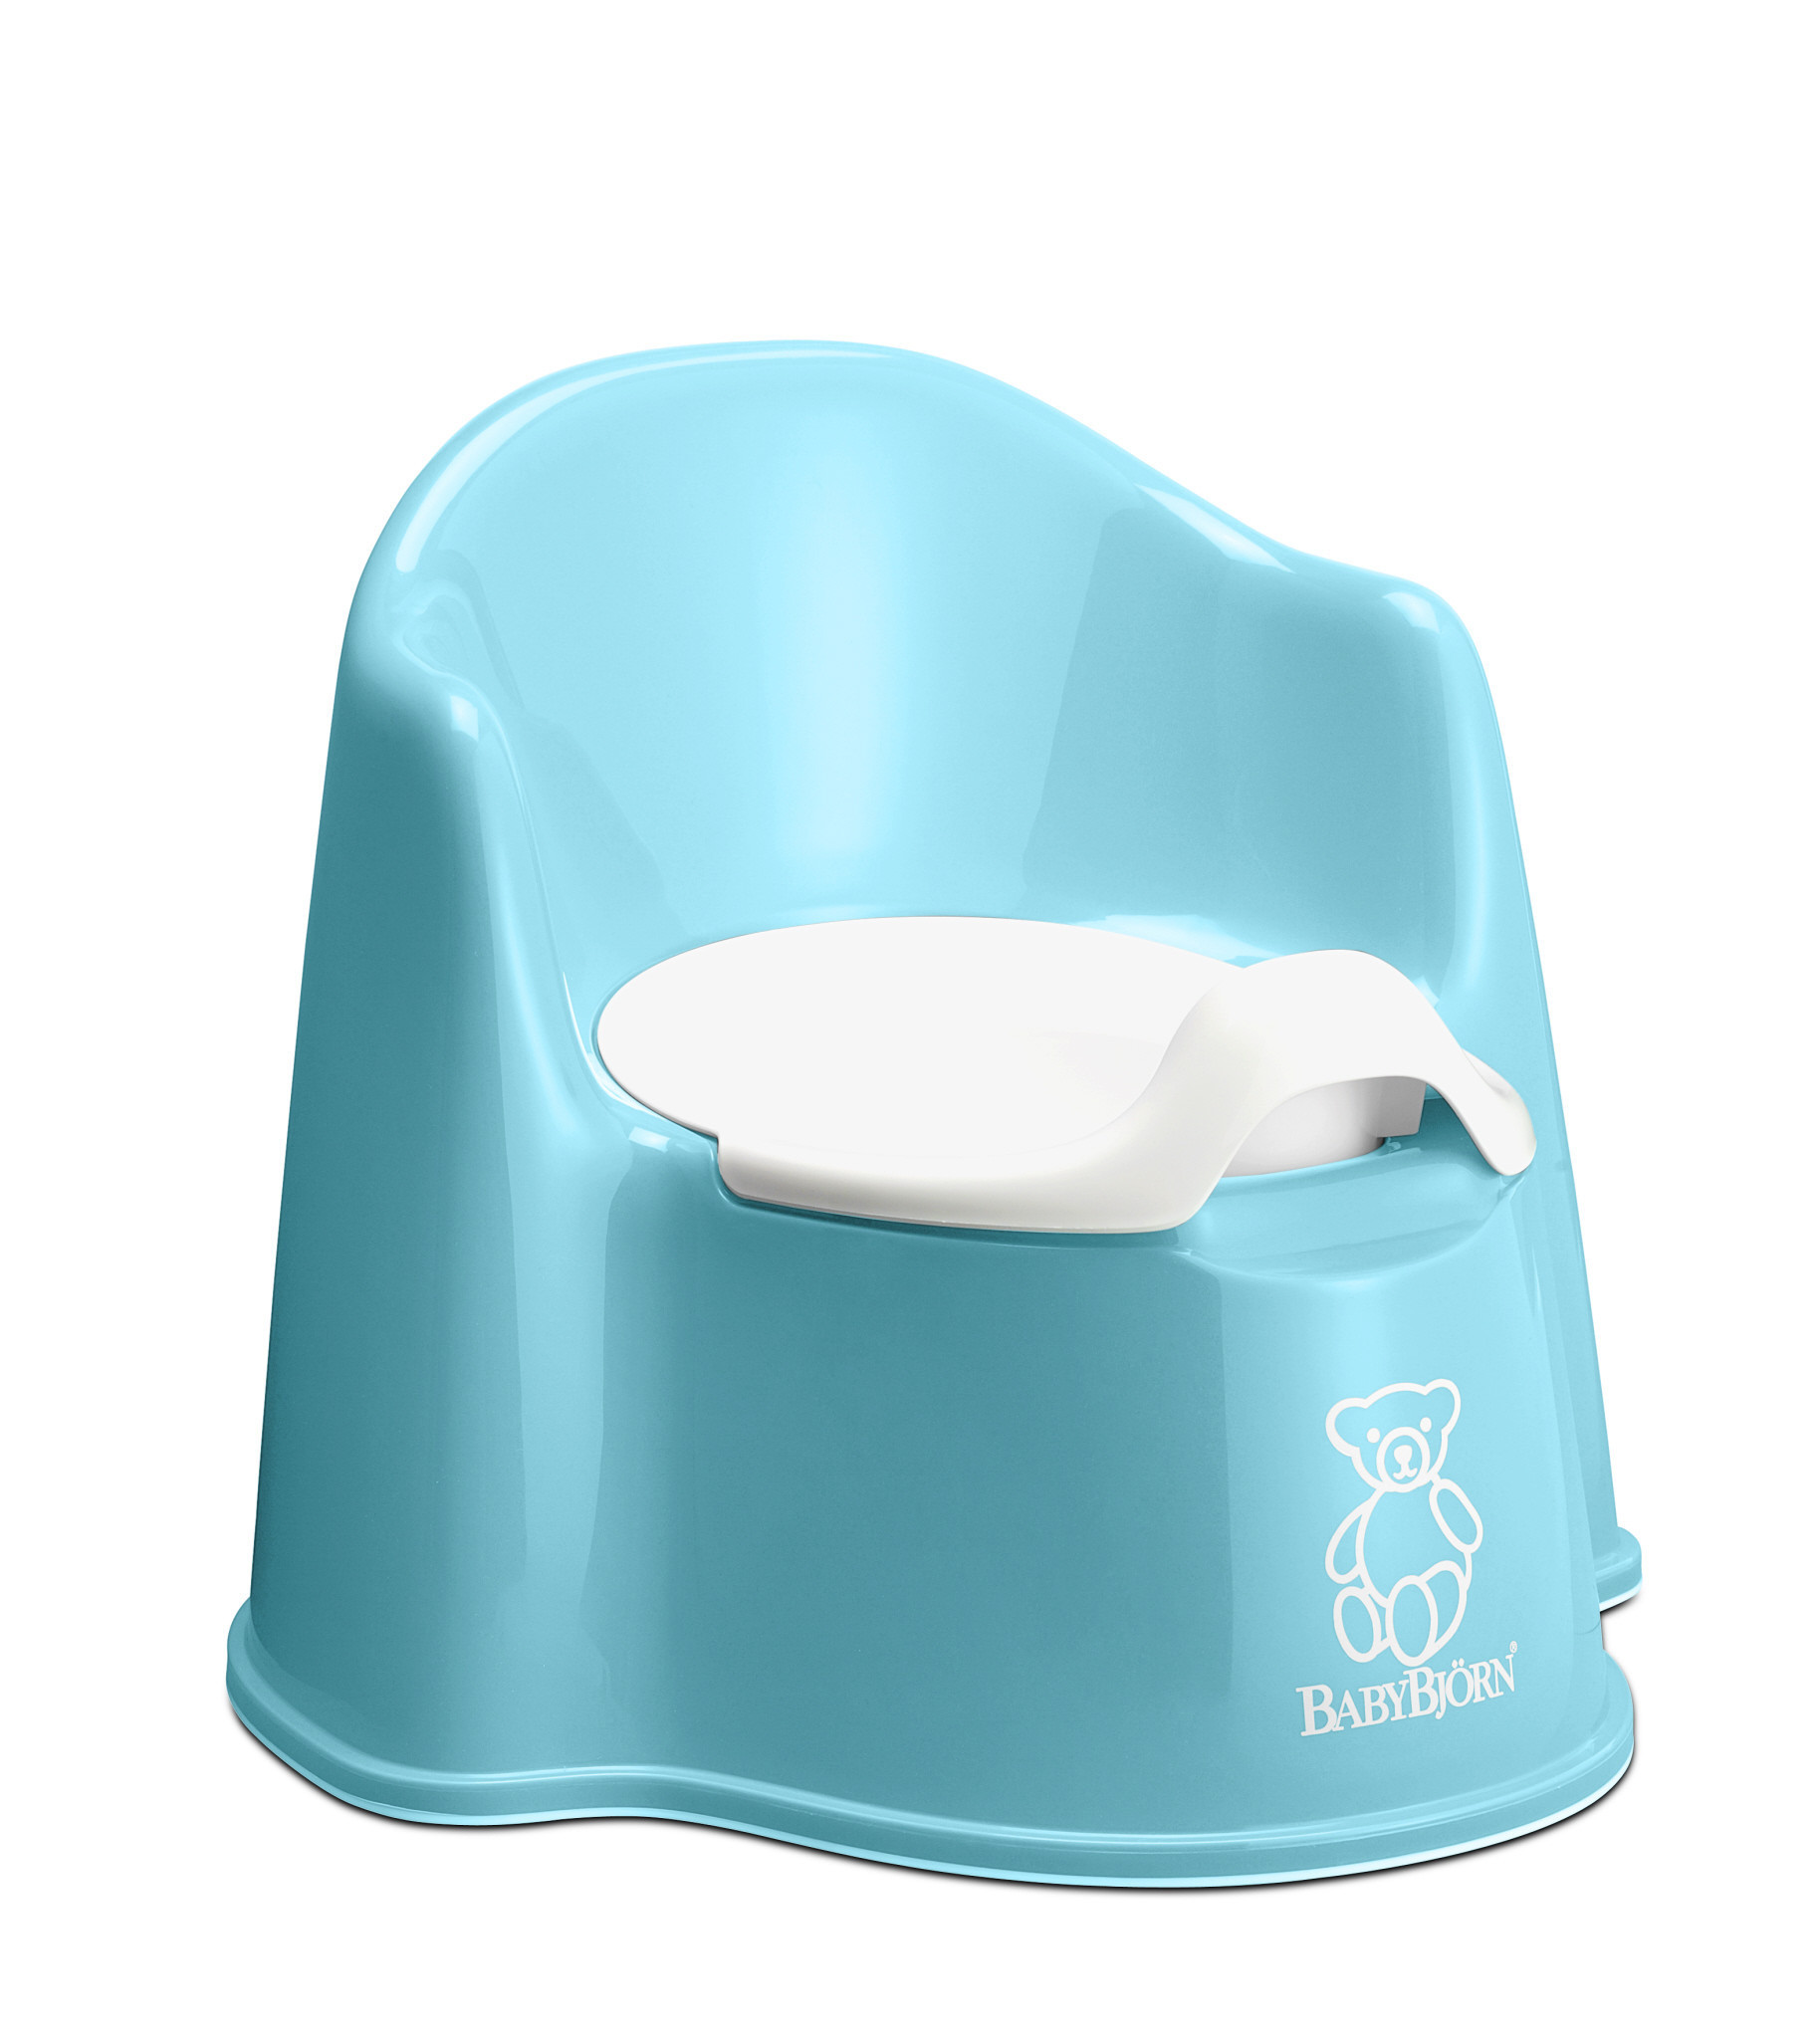 BABYBJÖRN - Potty Chair - Turquoise